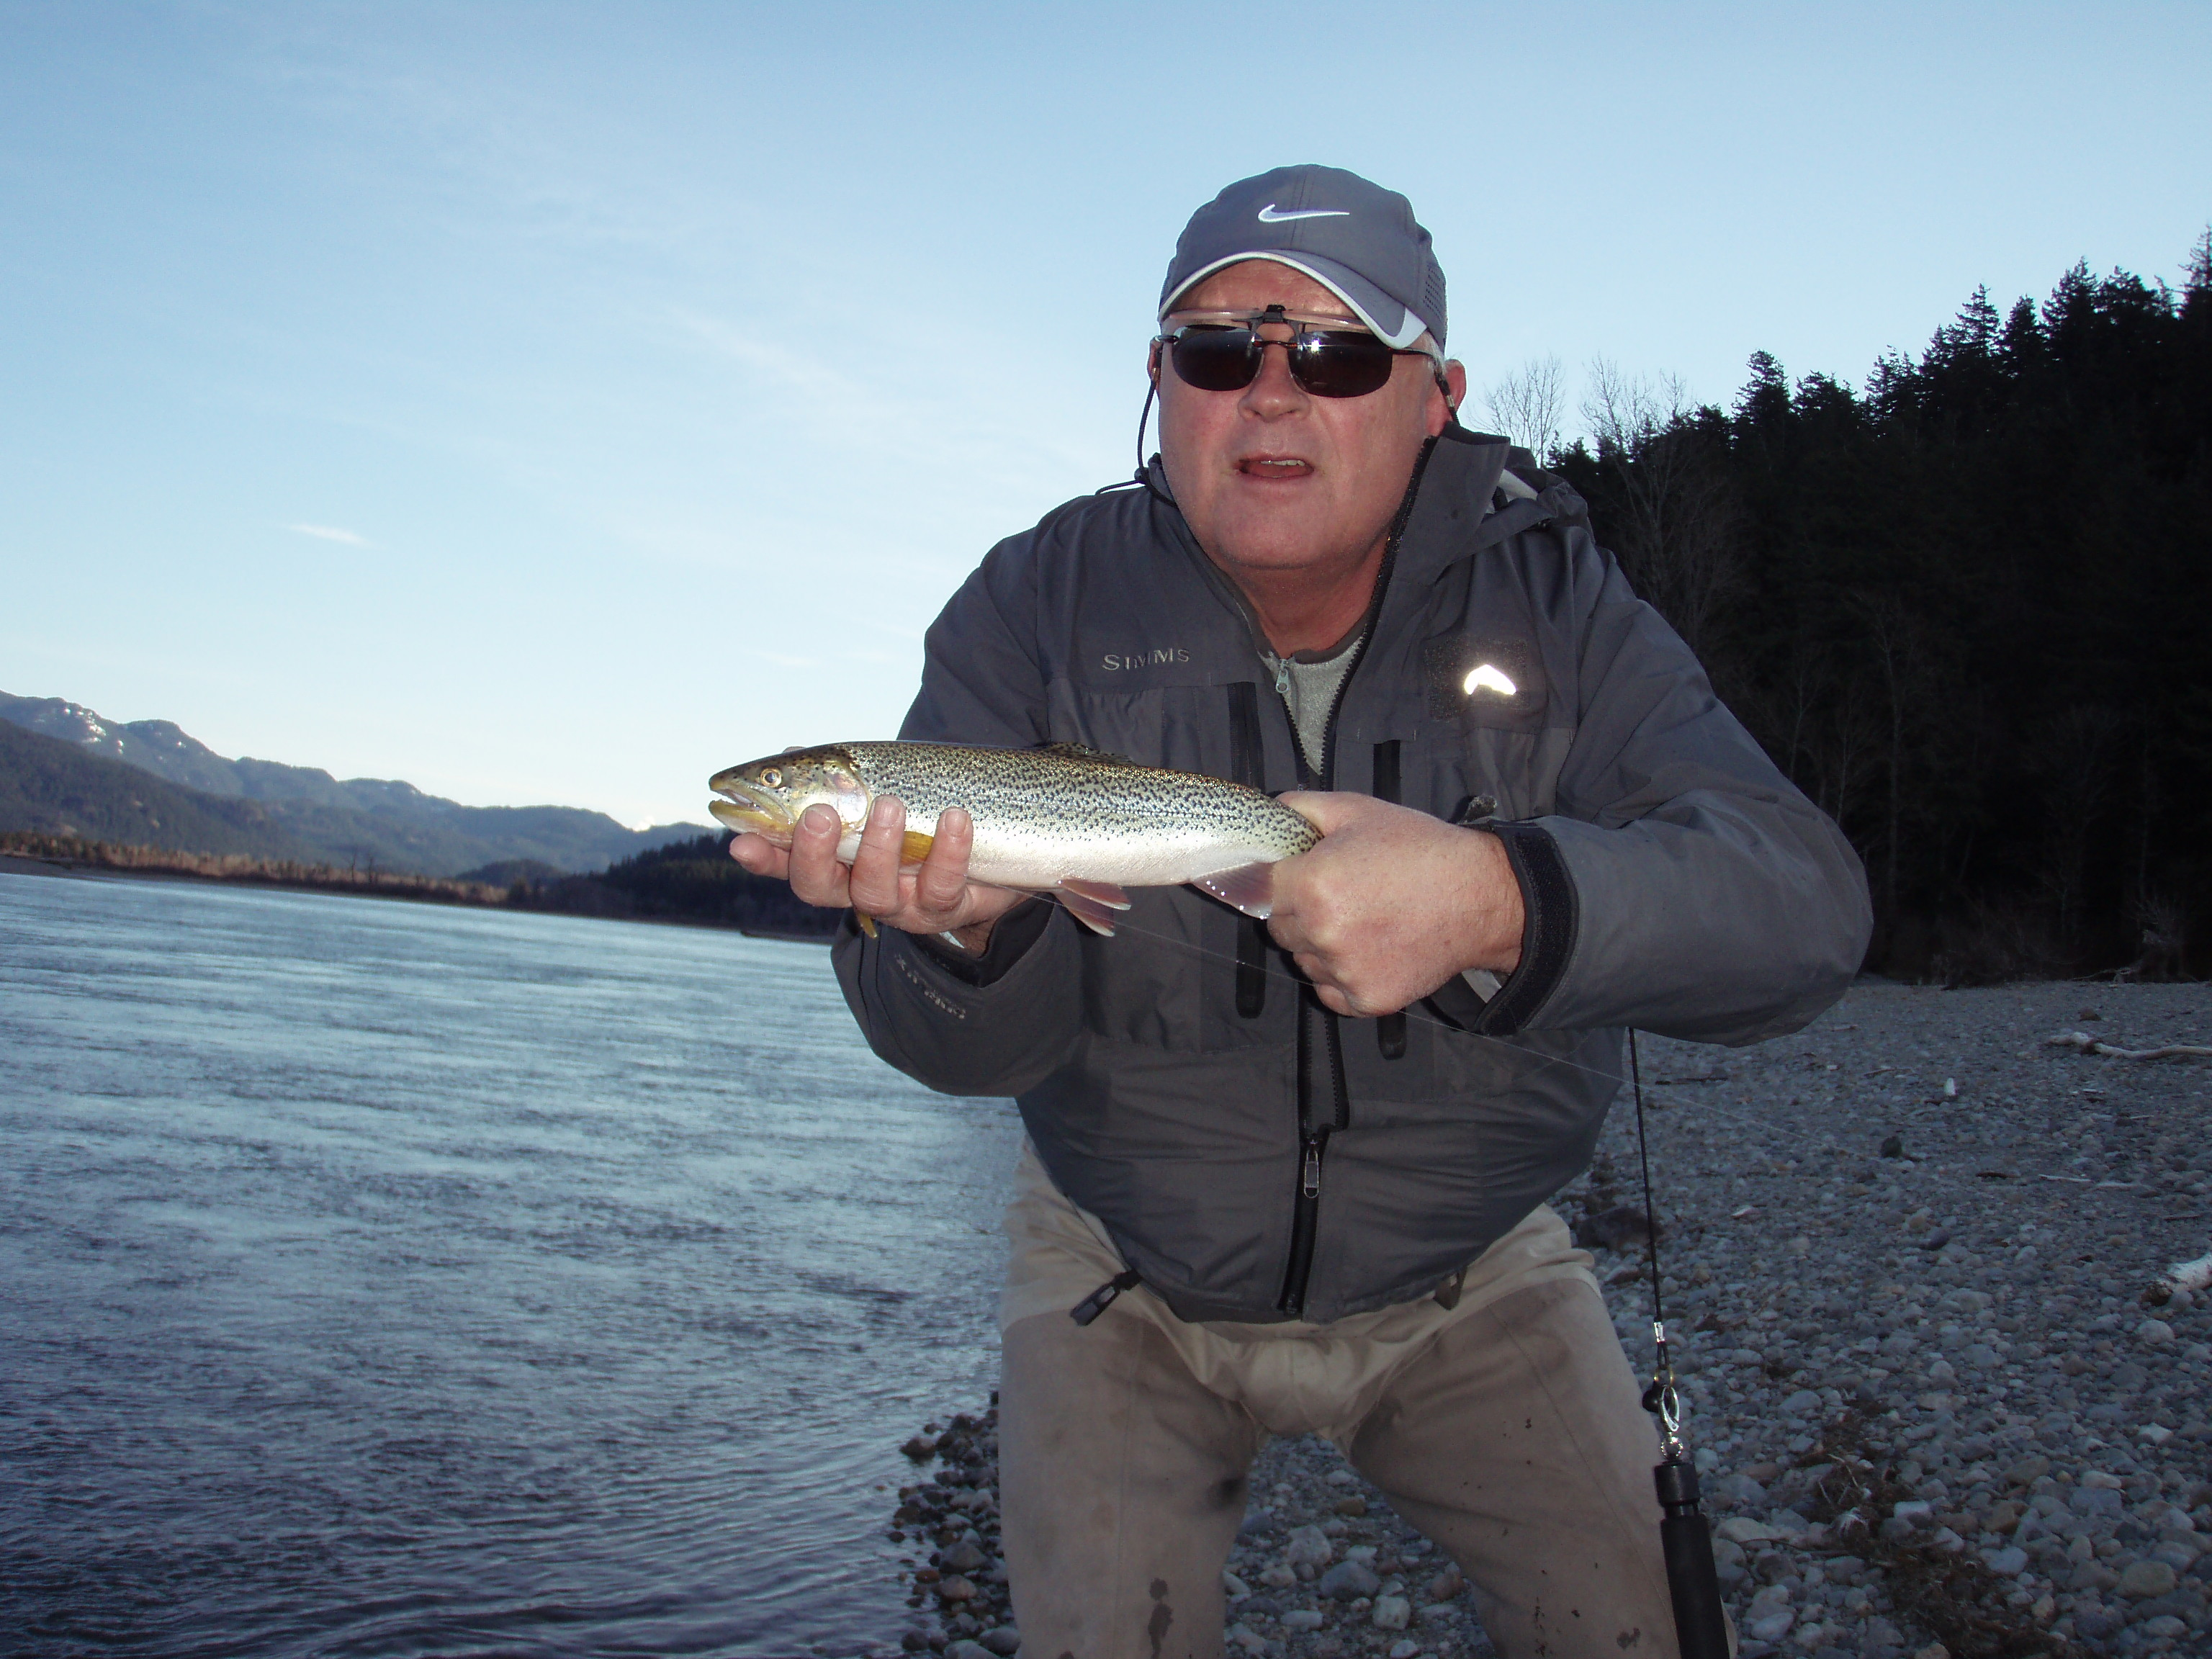 Frank with a nice cutthroat caught during the guided portion of our cutthroat course.